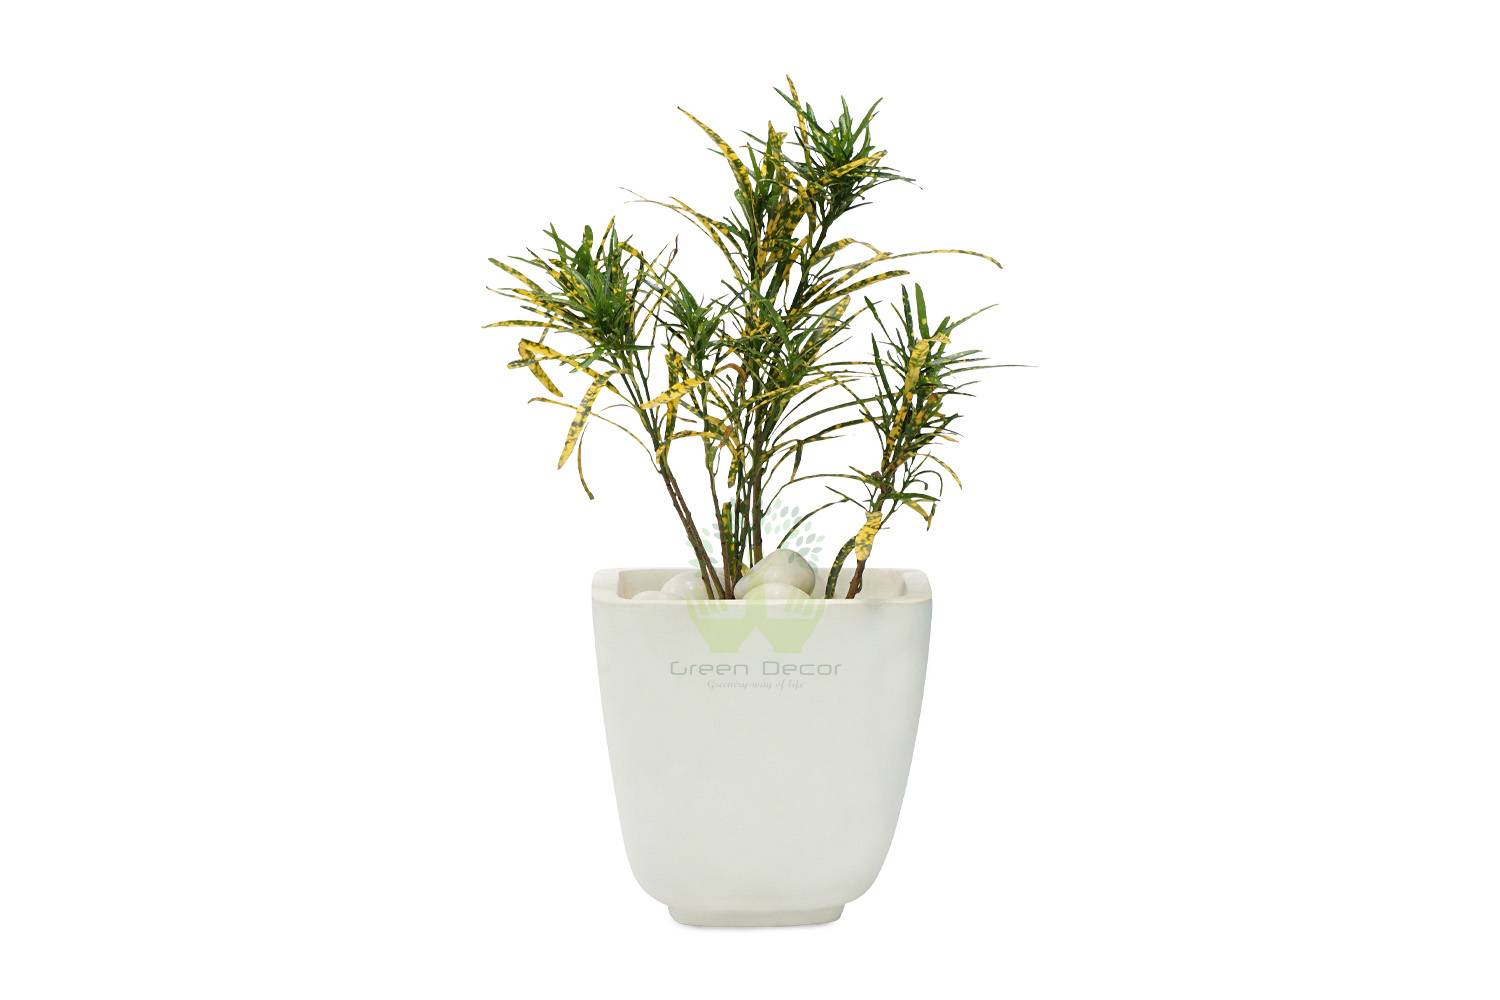 Buy Croton Golden Dust Thin Leaves Front View, White Pots and Seeds in Delhi NCR by the best online nursery shop Greendecor.